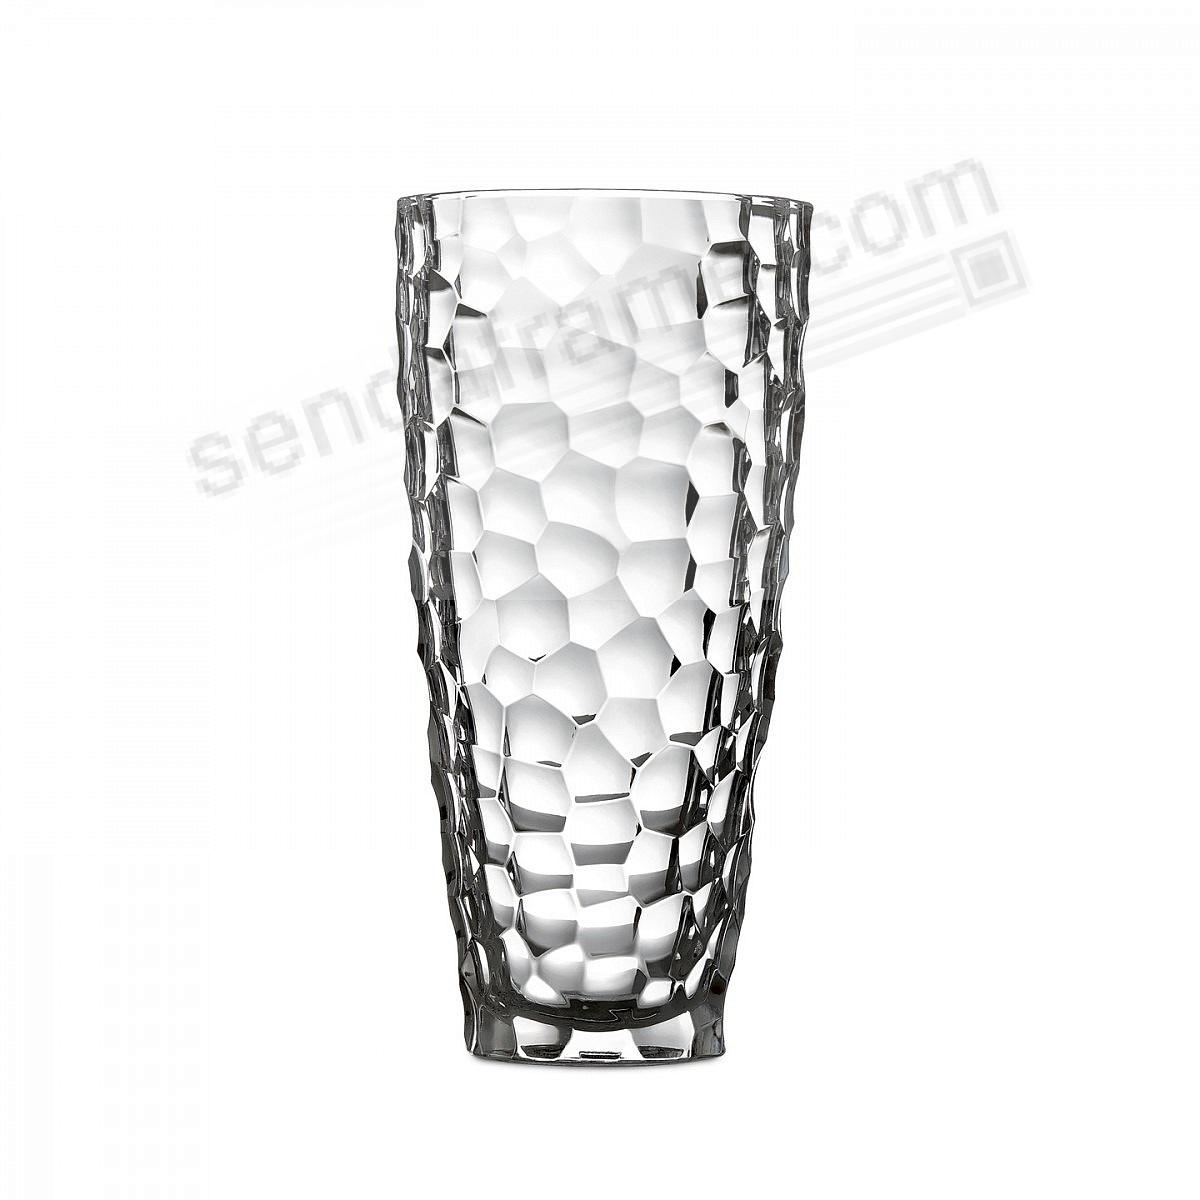 The Vera Wang® SEQUIN 9-inch Flower Vase by Wedgwood®